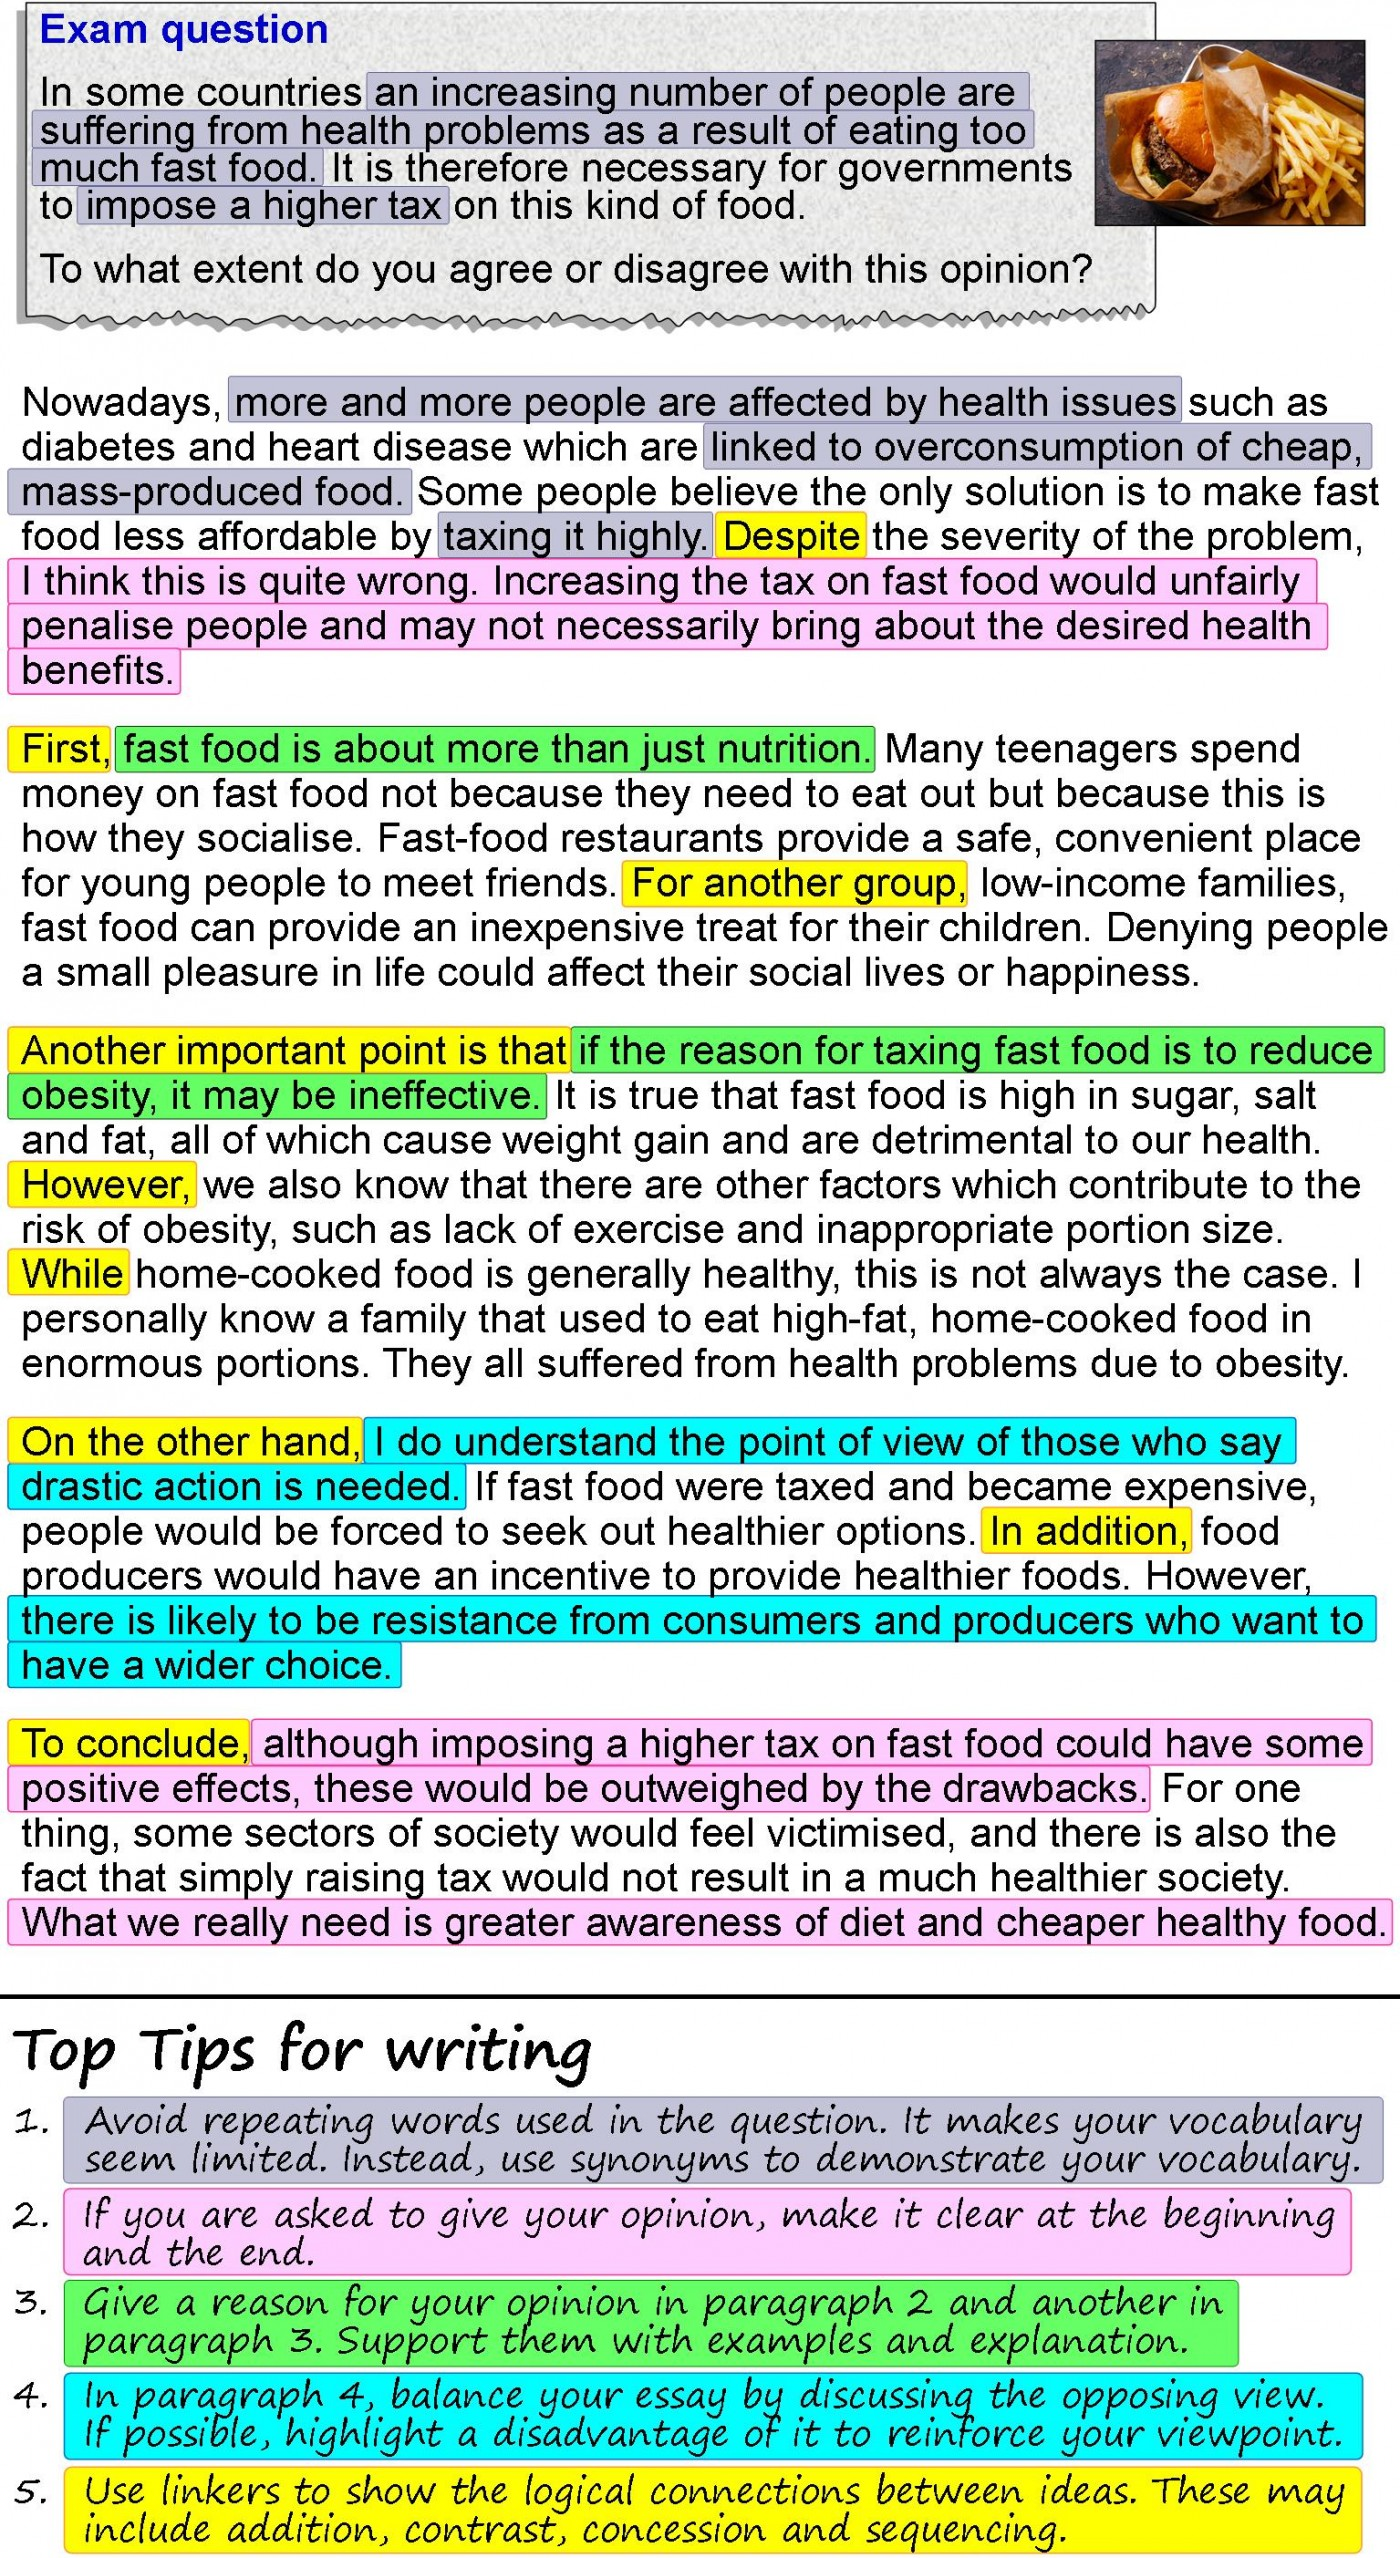 001 Opinion Essay About Fast Food Example An 4 Unbelievable British Council 1400